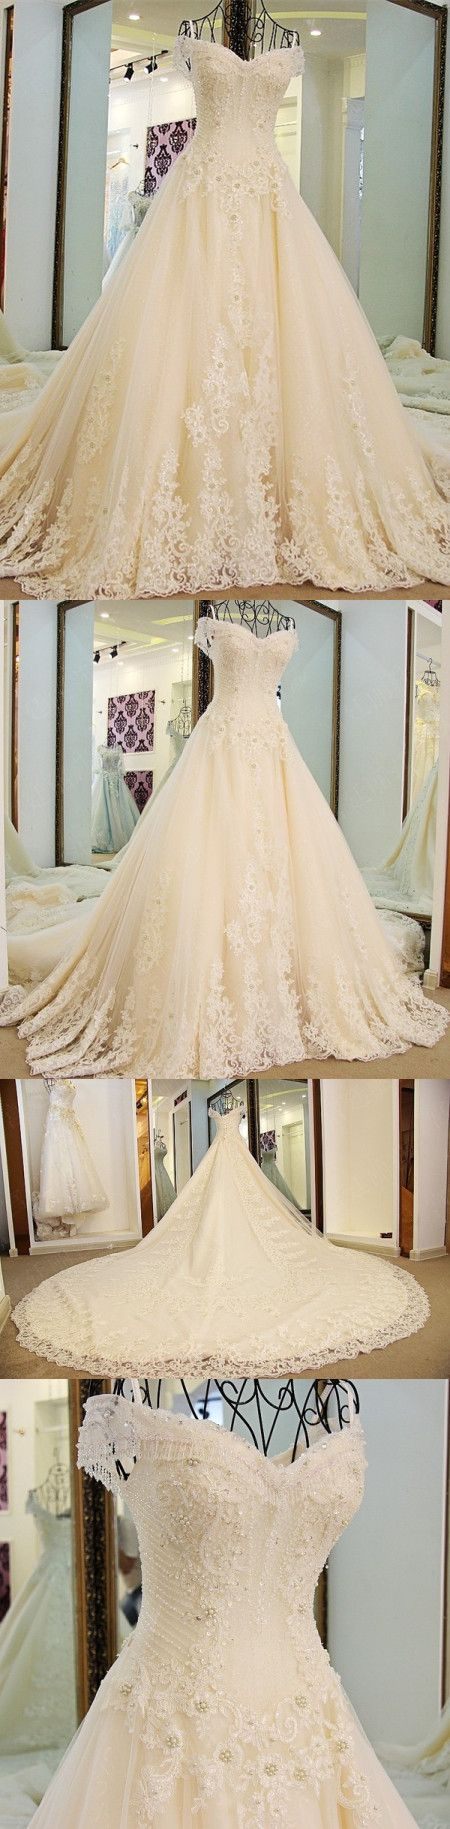 A-line Spaghetti Strap Cathedral Train Tulle Lace Beaded Wedding Dresses ASD2626 #weddingdresses #bridaldresses #lace #romantic #princess #weddings